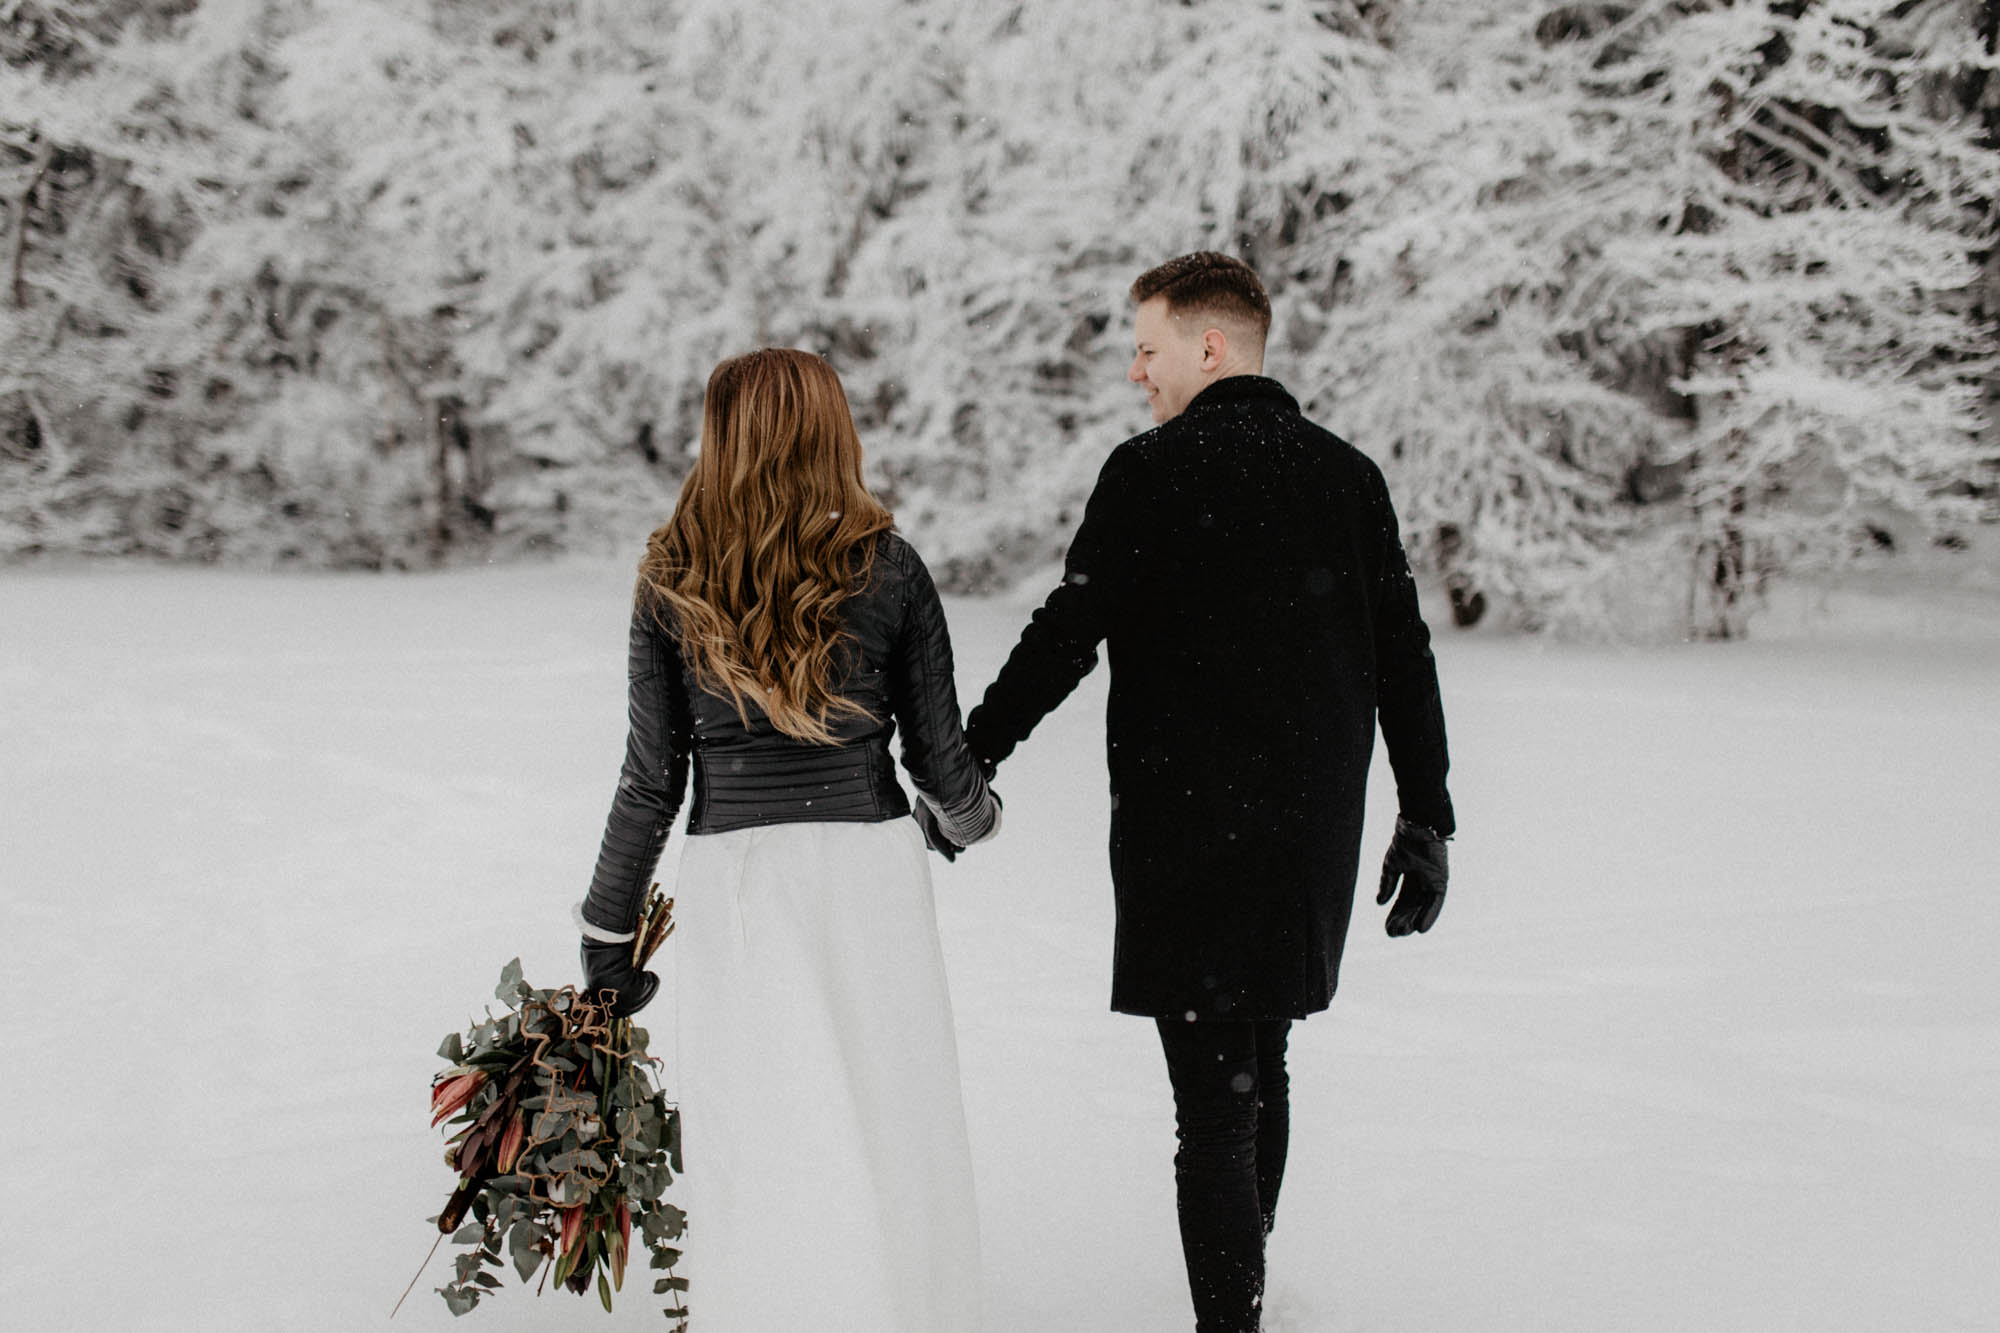 ashley_schulman_photography-winter_wedding_tampere-6.jpg